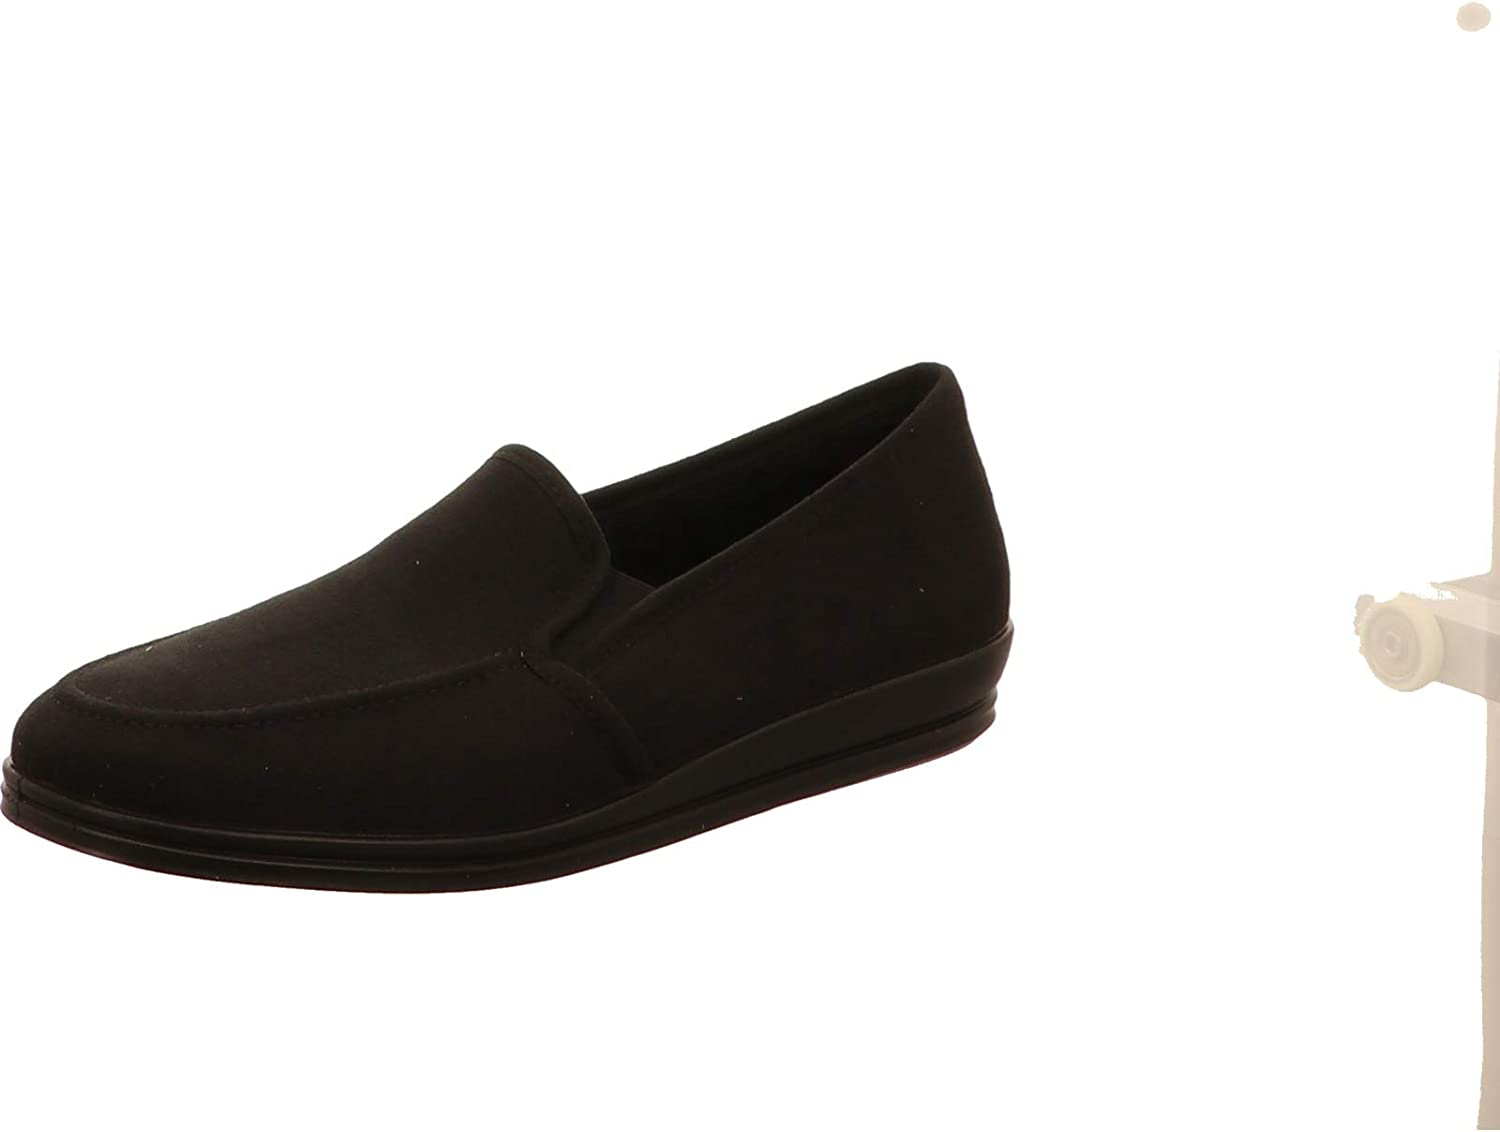 Max Credence 83% OFF Rohde Men's Slippers